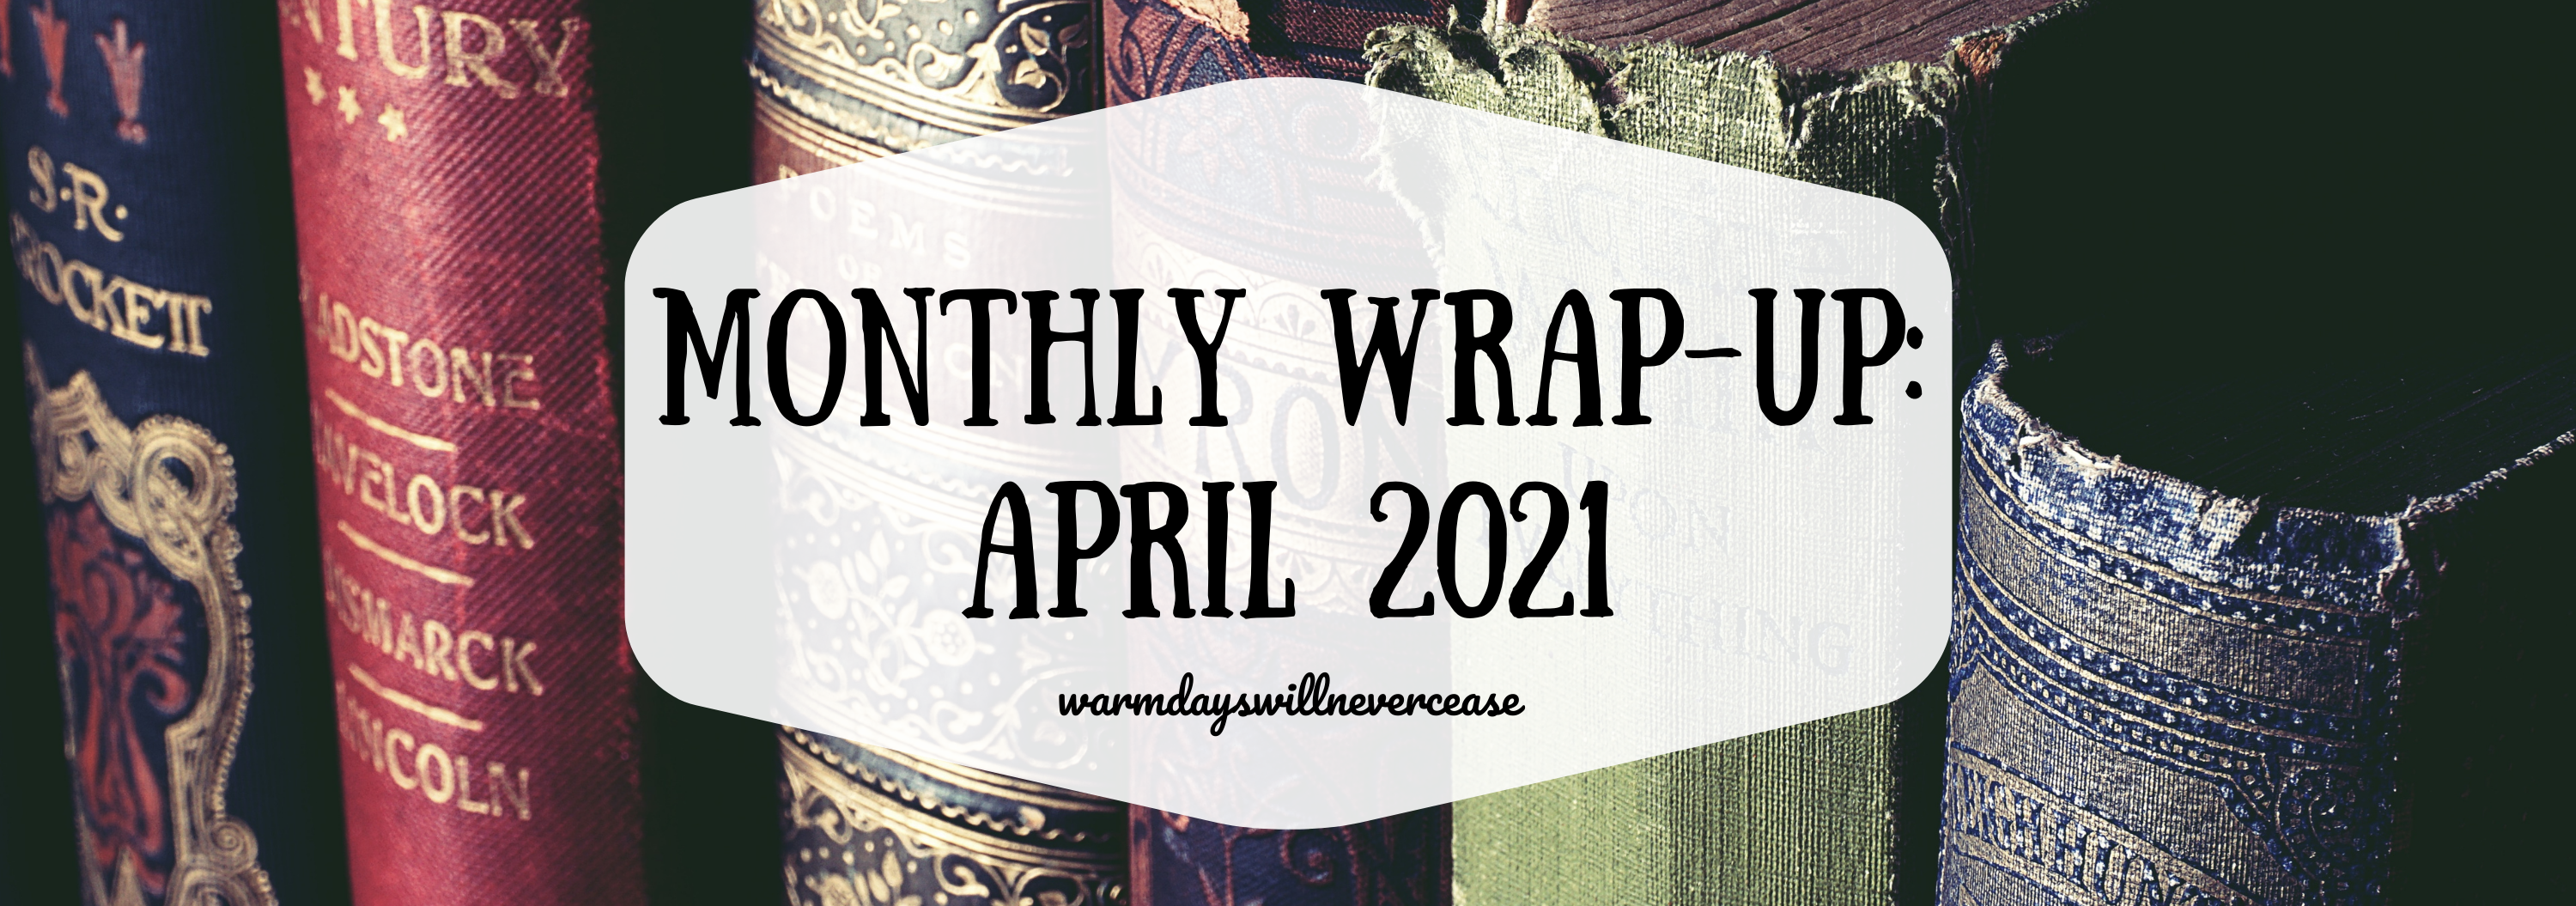 Apr 2021 Monthly Wrap Up